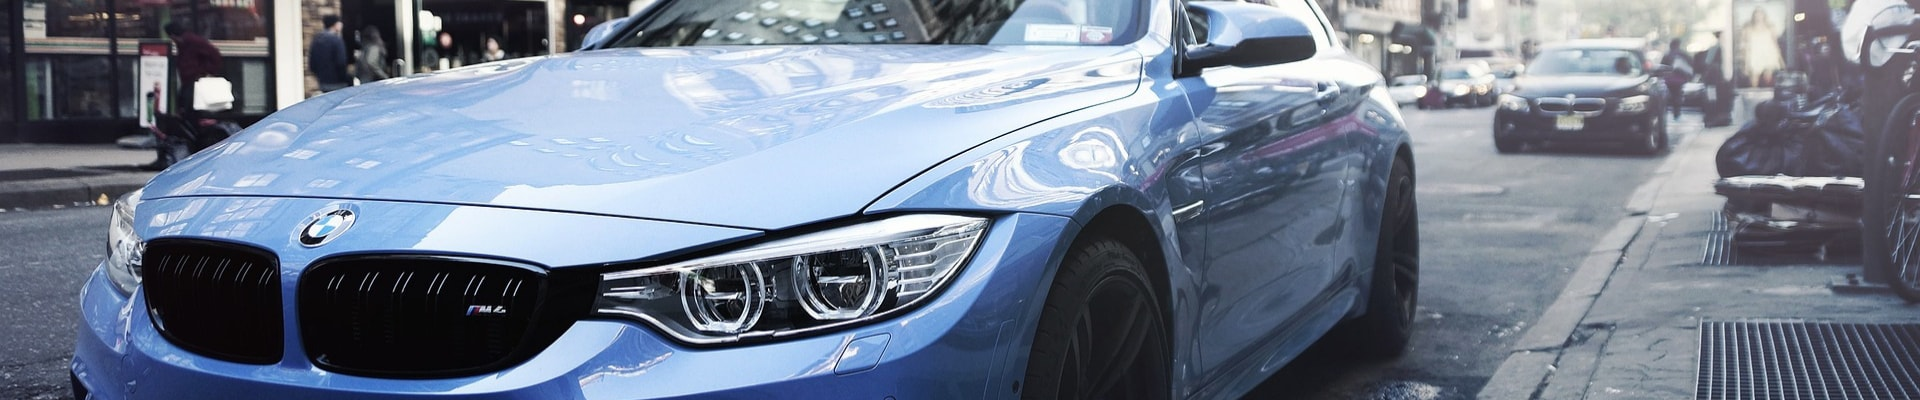 Close up look at the front exterior of a used blue BMW M6 car parked on a busy city street